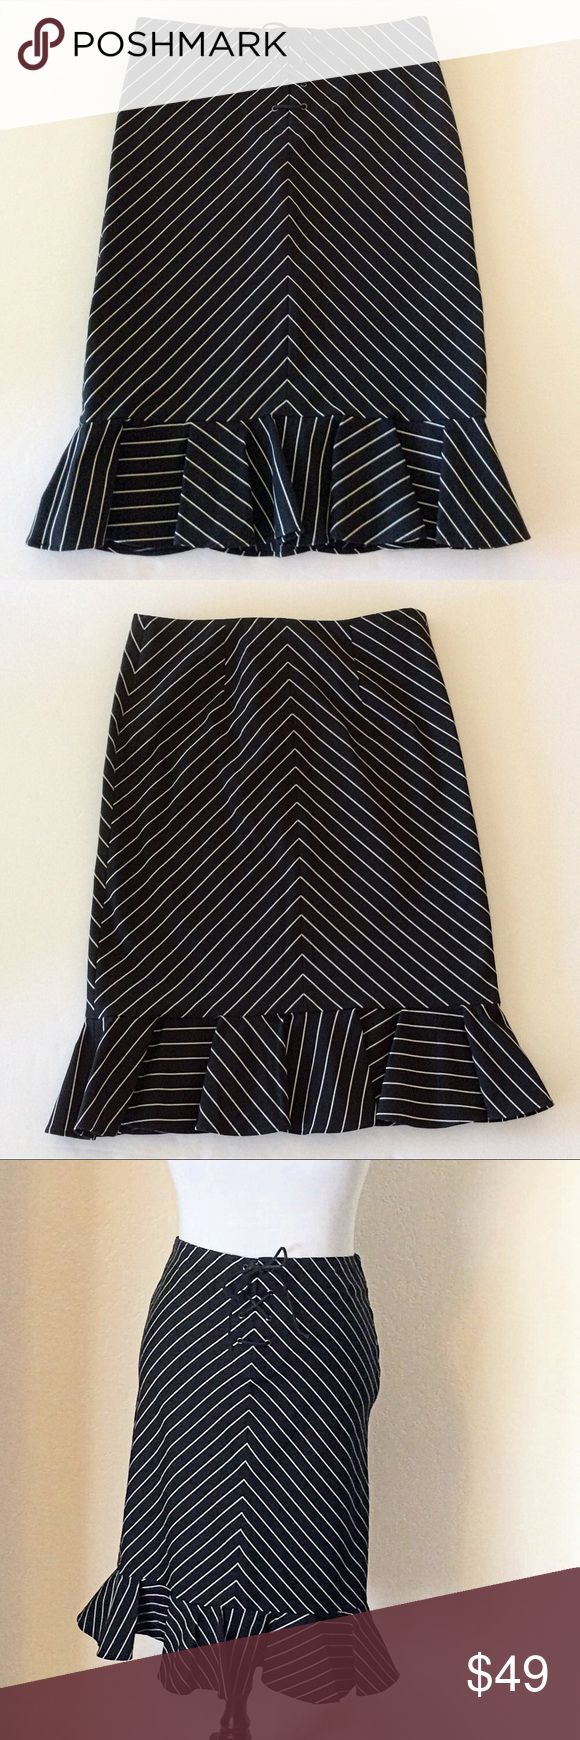 """RALPH LAUREN LACE UP STRIPE TRUMPET SKIRT SIZE 4 EUC Ralph Lauren pencil/trumpet skirt with black and white stripes. The waist laces up with a leather thong, there's stretch to the fabric to help fit the curves.  Measures flat 15"""" across the waistband and 24"""" waistband to hem. Ralph Lauren RRL Skirts"""